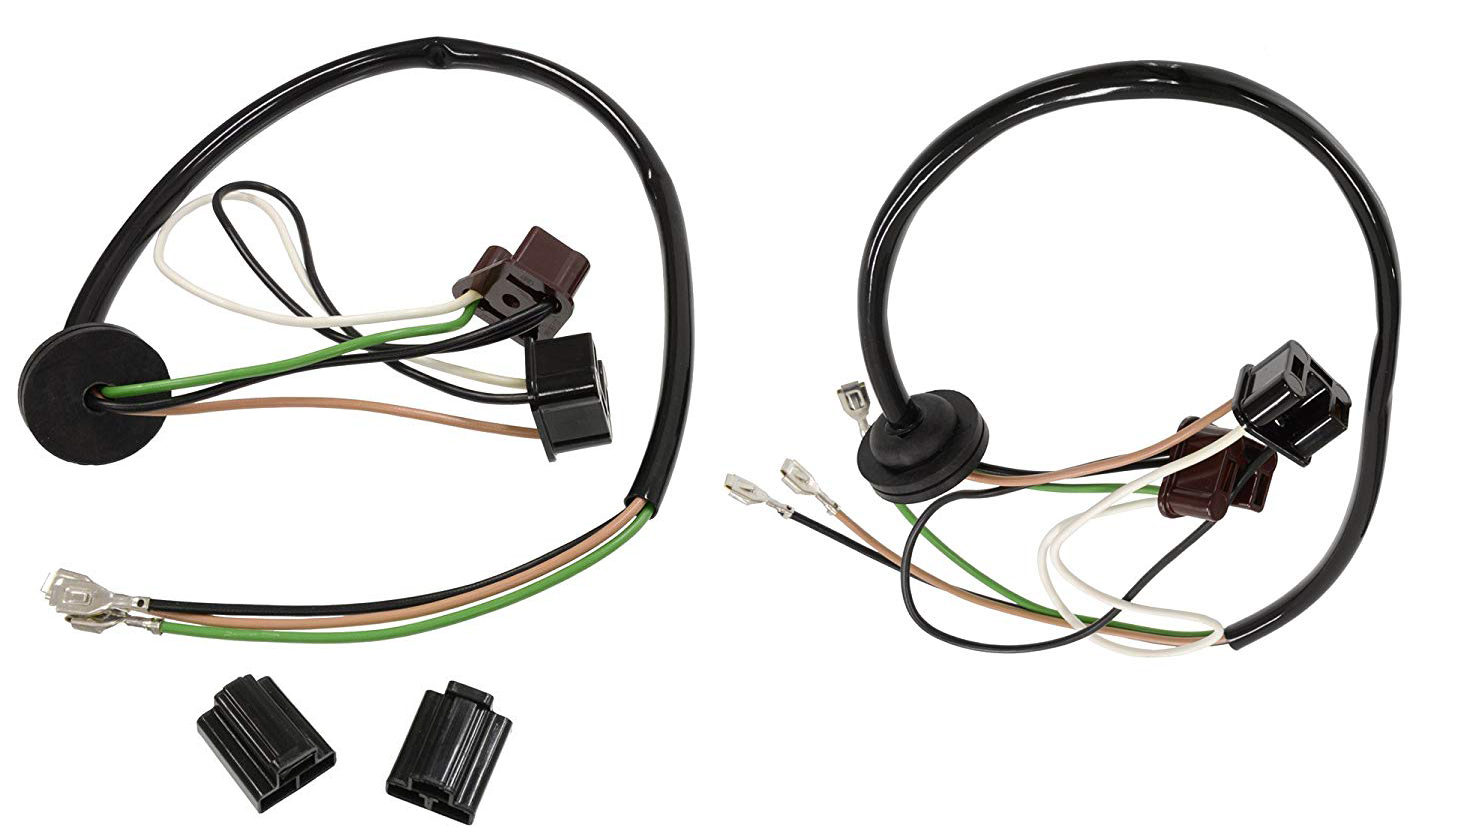 1963 Corvette Headlight Extension Harness With Fib Buckets (2 Pcs)